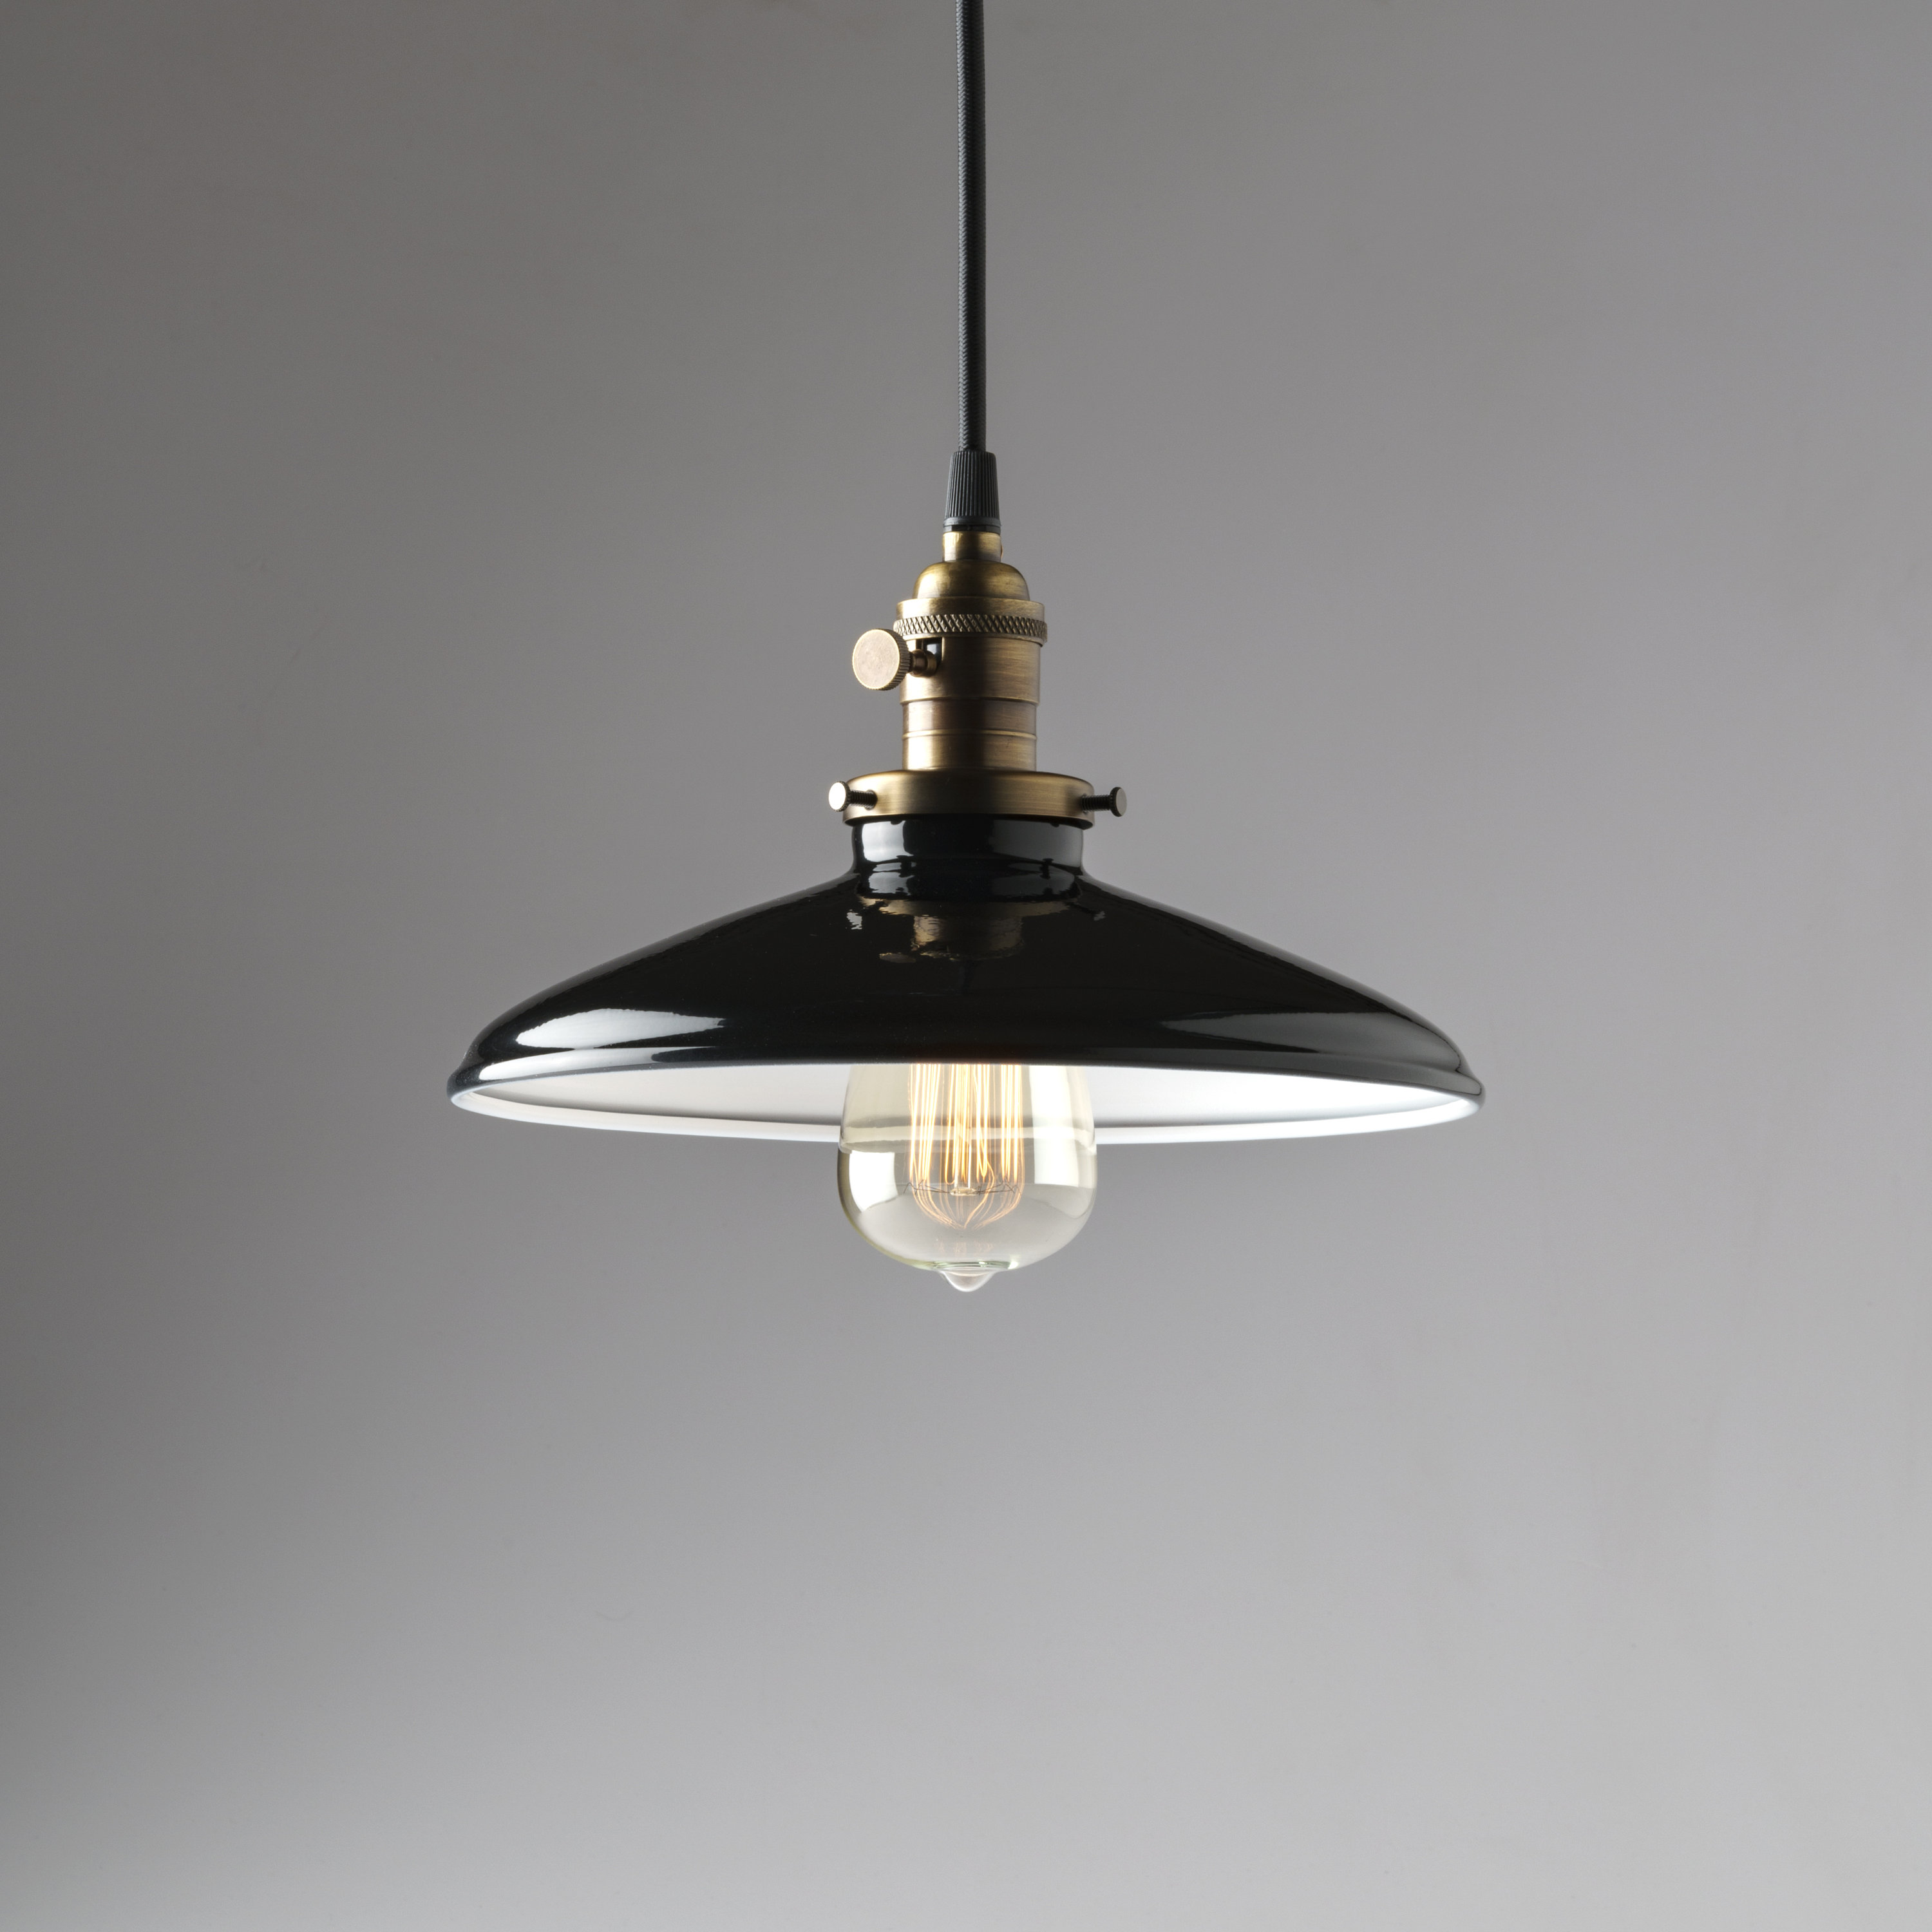 Pendant Light Fixture Black Porcelain Enamel Metal 10